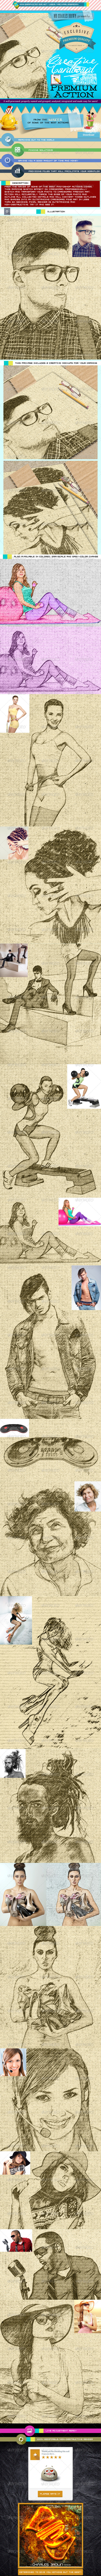 Creative Cardboard Fashion Sketch - Photo Effects Actions